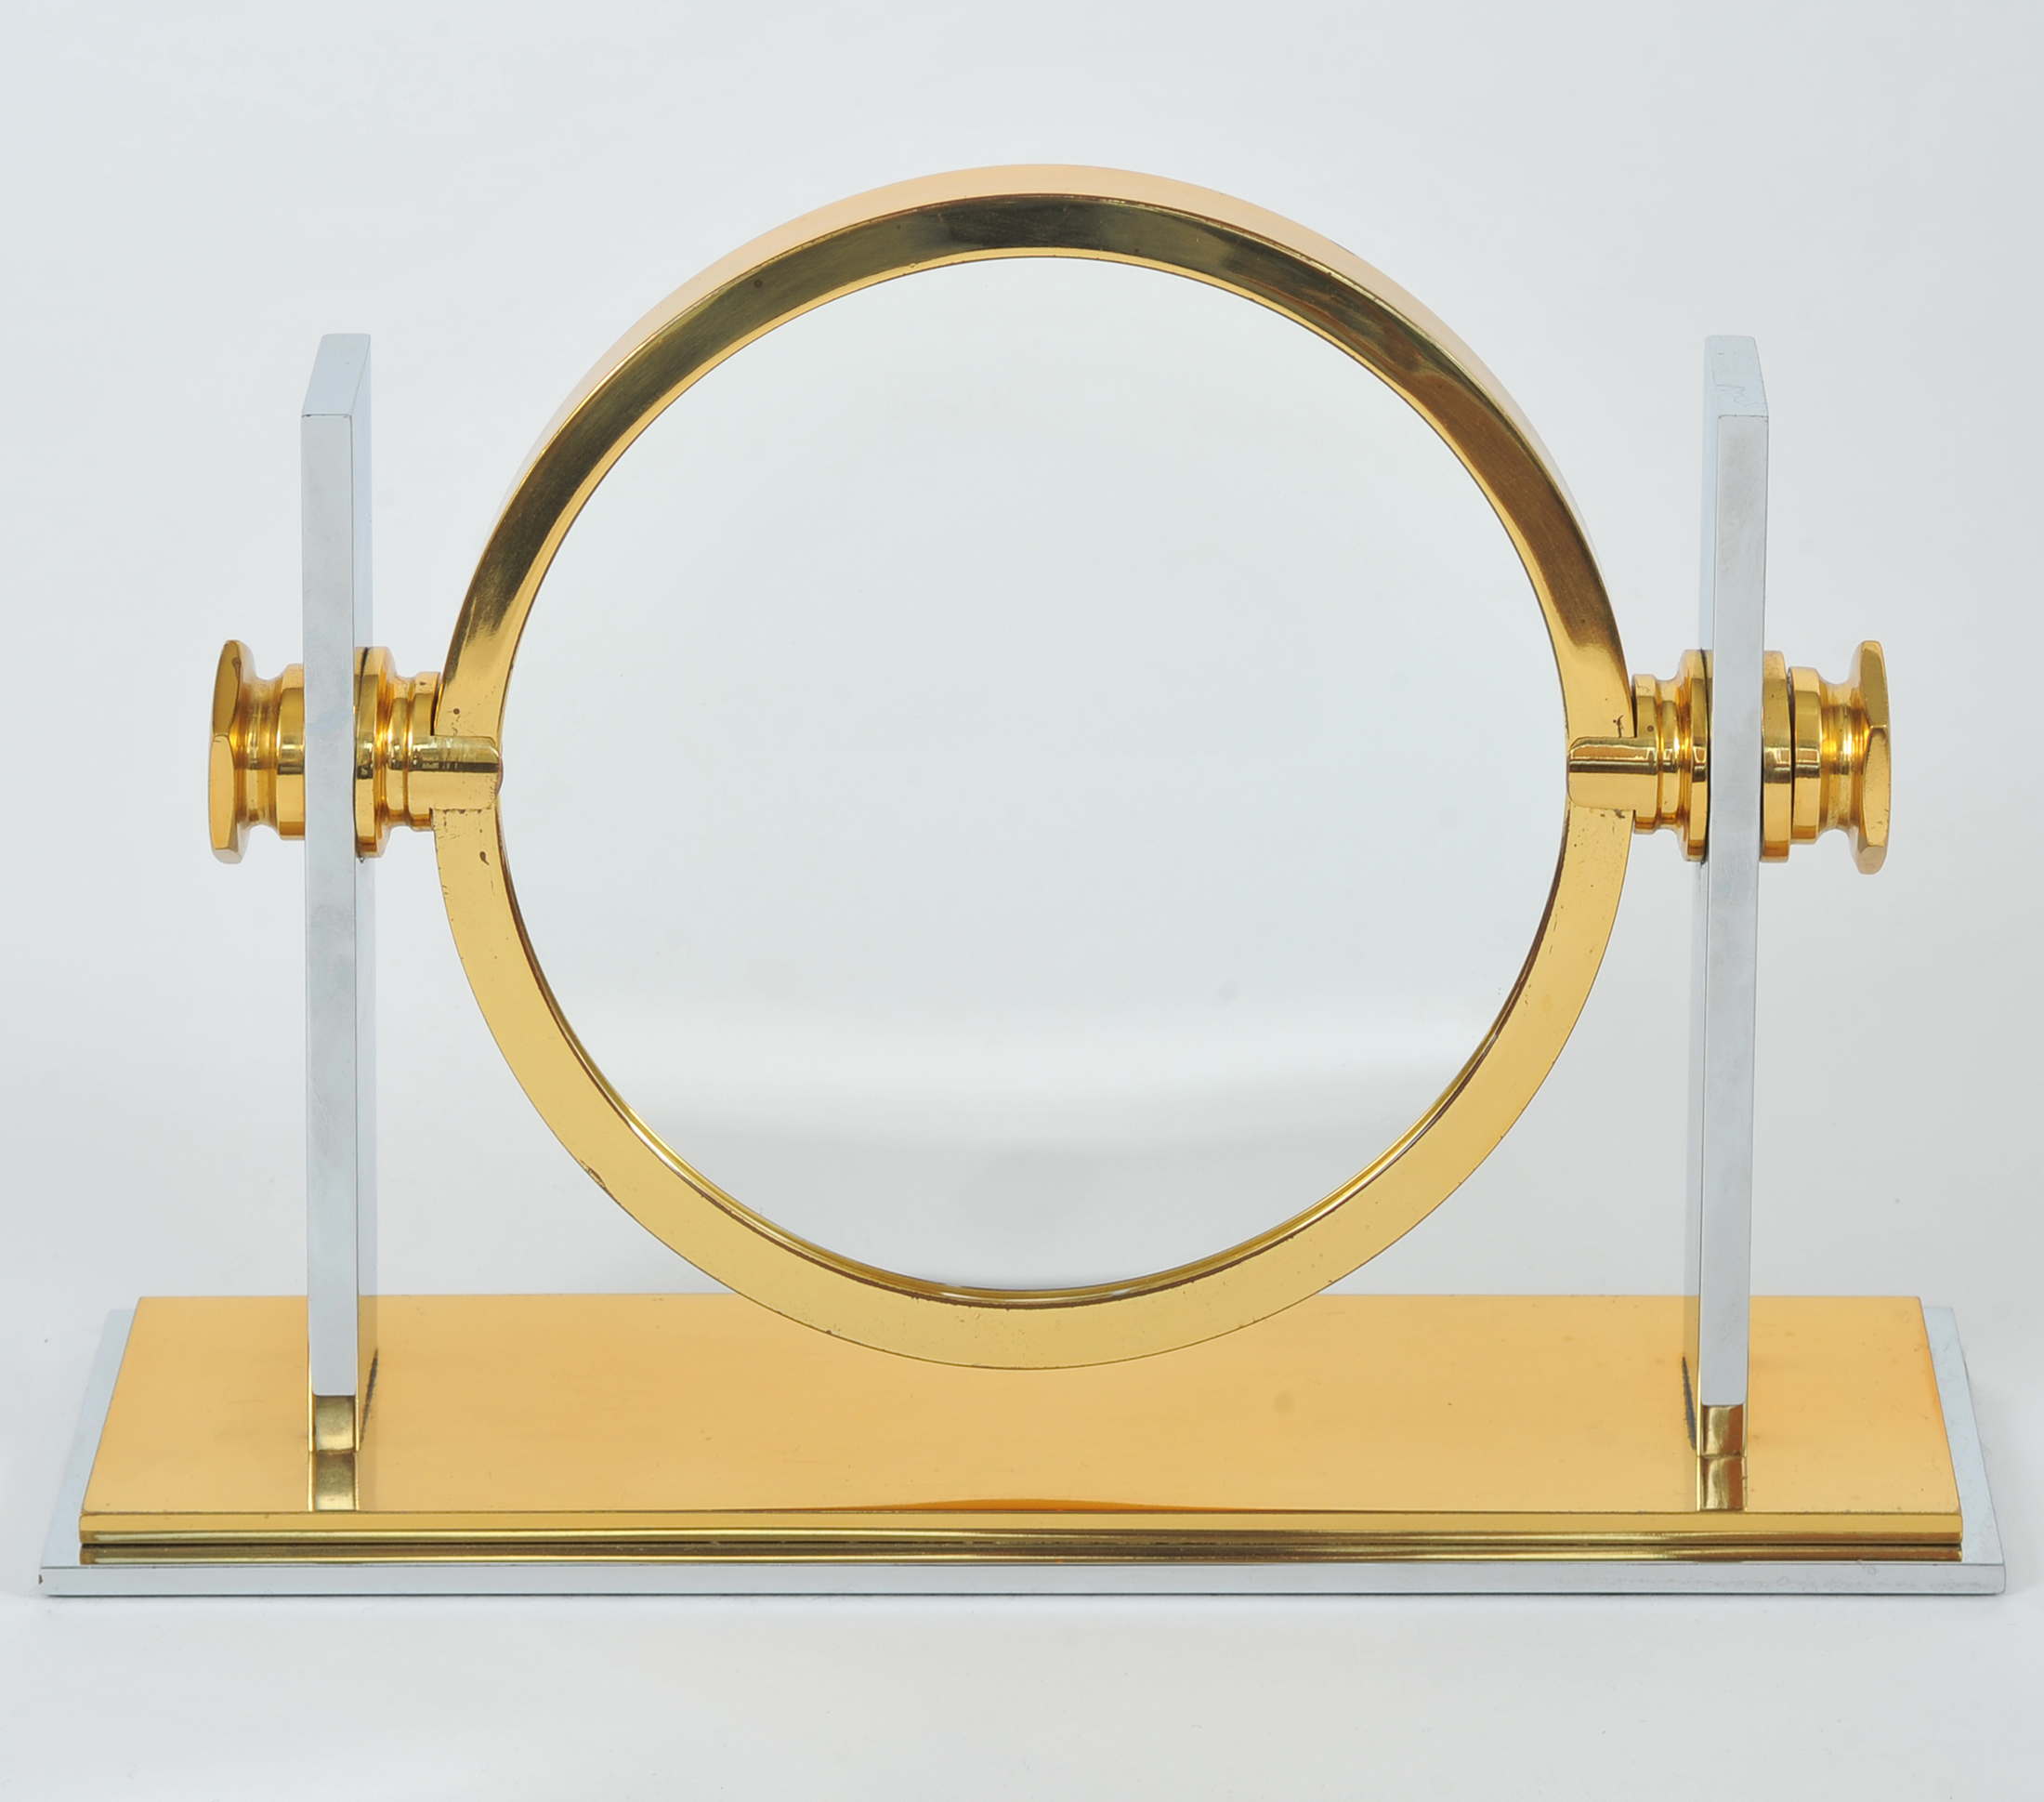 Valerie Wade Mt424 1980S Table Mirror Karl Springer 02